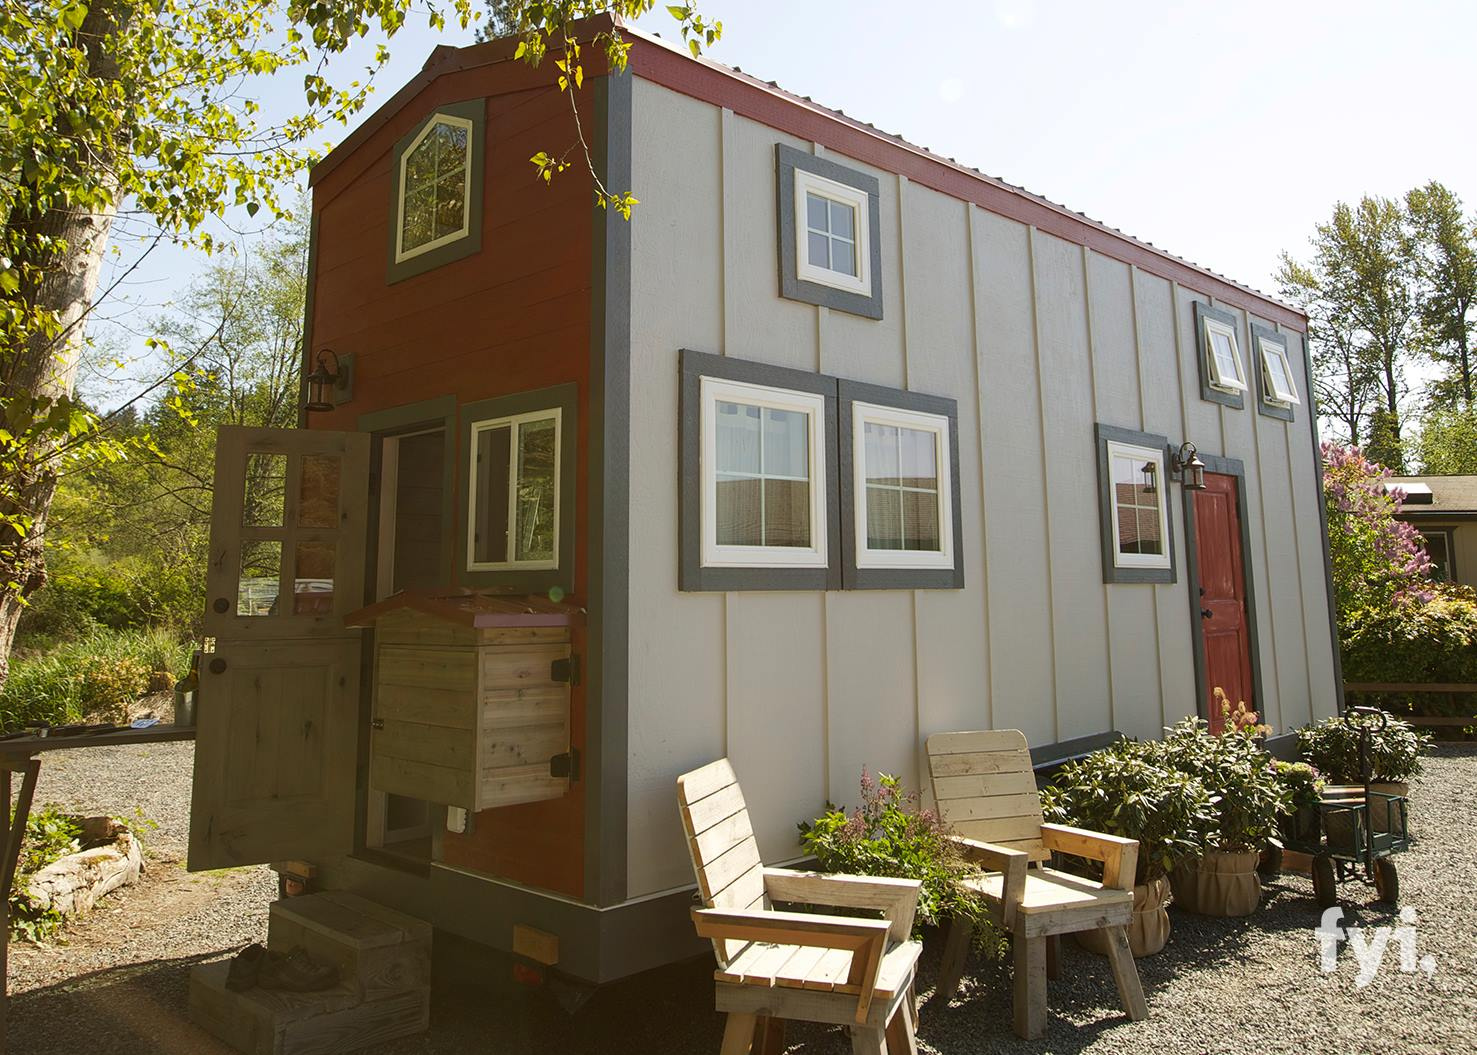 500 sq ft tiny houses pictures inside and out - Tiny House Nation